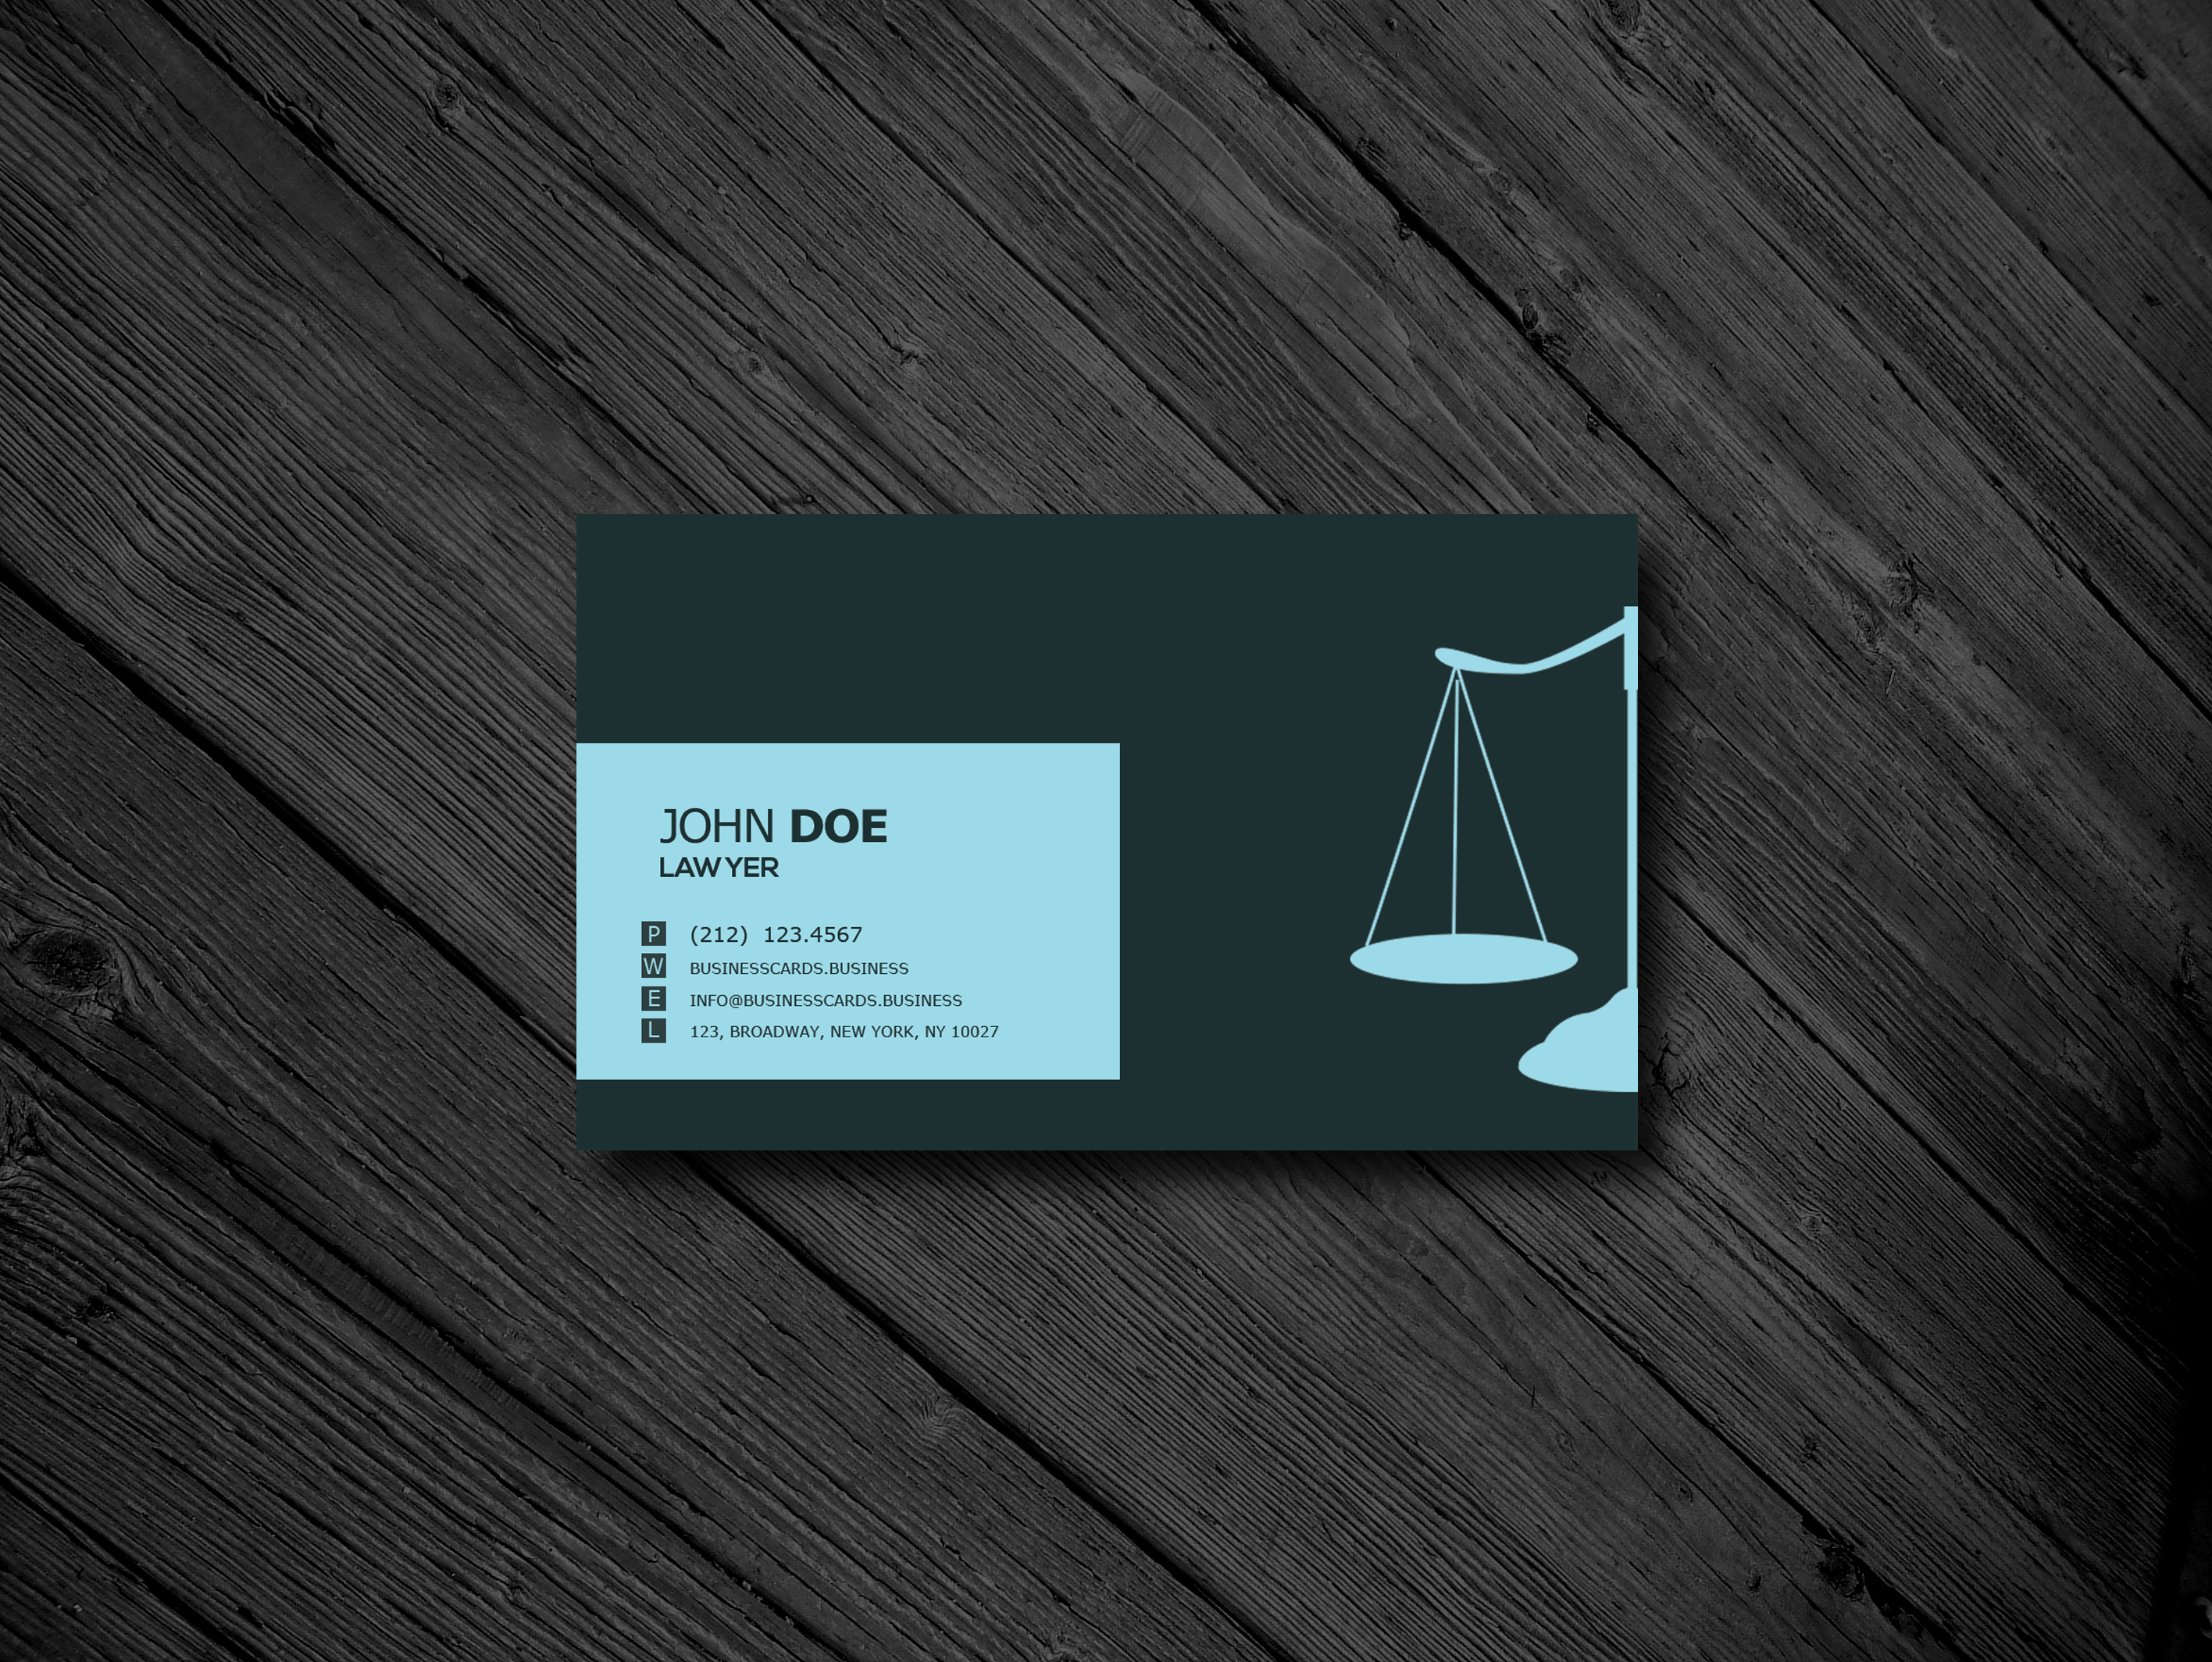 Free business card templates business cards templates free lawyer business card psd template wajeb